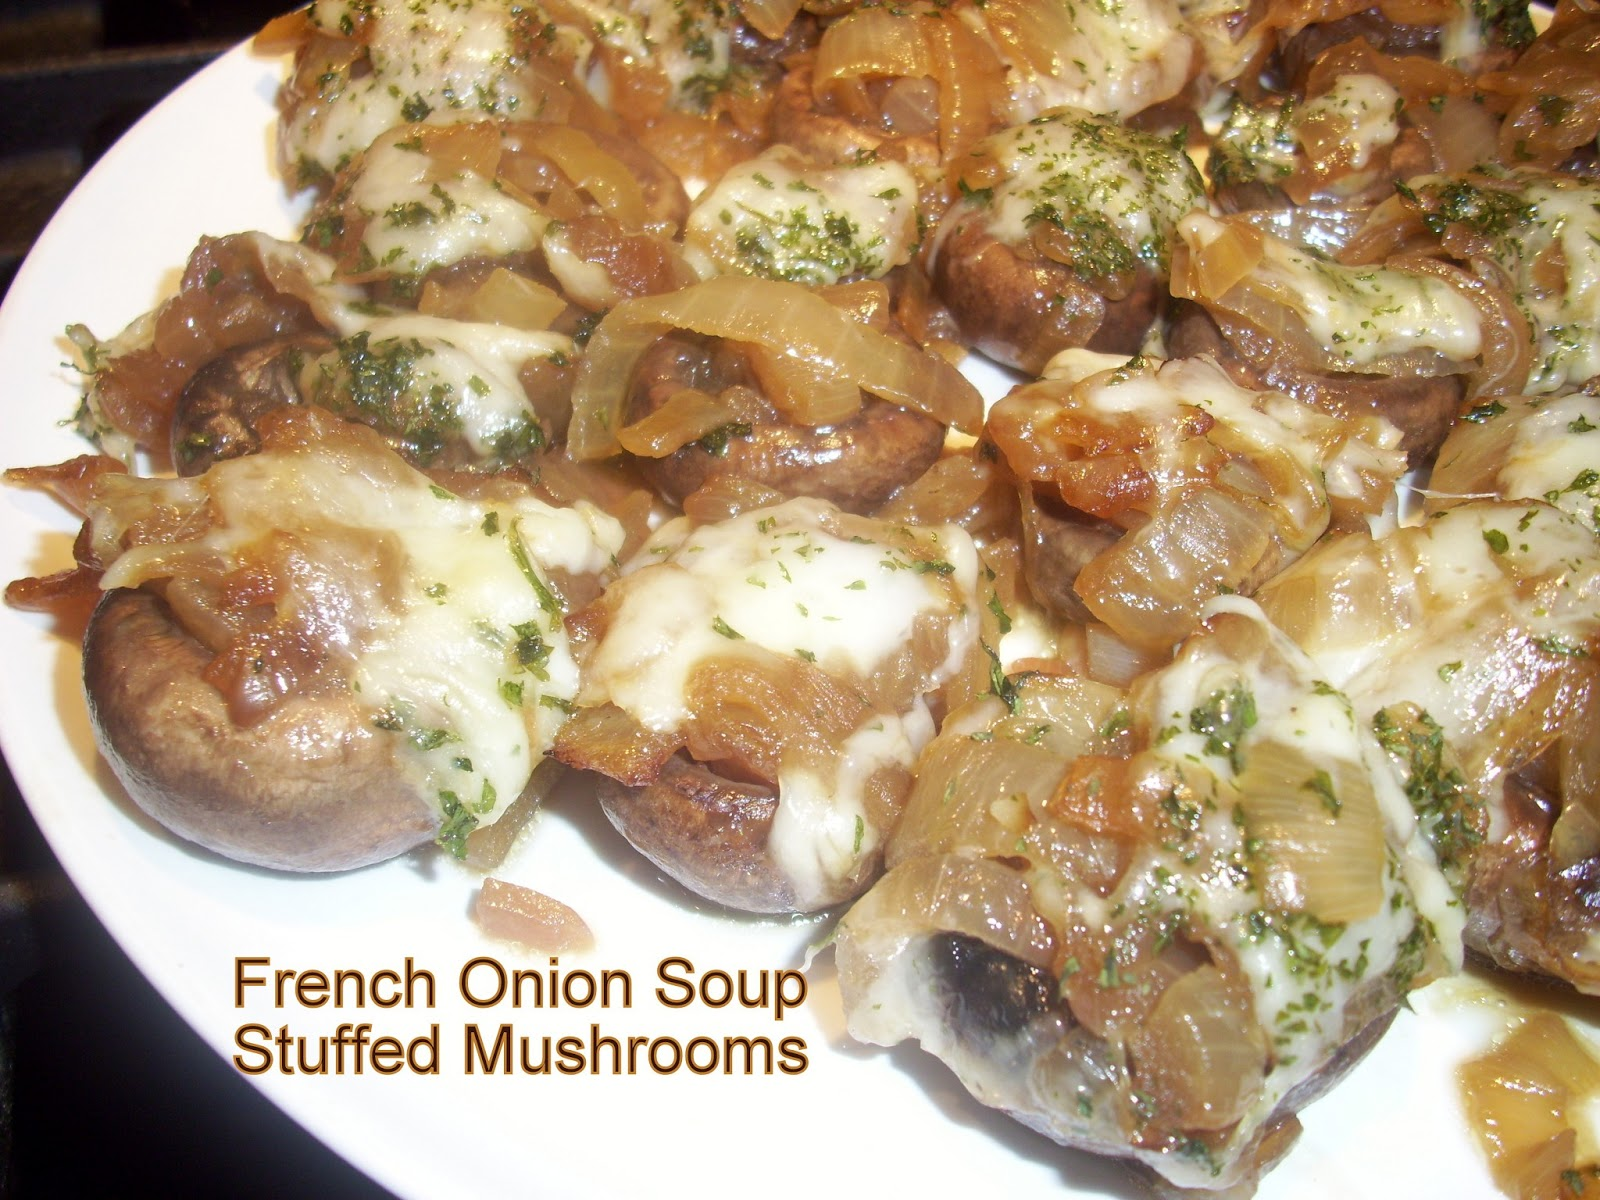 Flavors by Four: French Onion Soup Stuffed Mushrooms